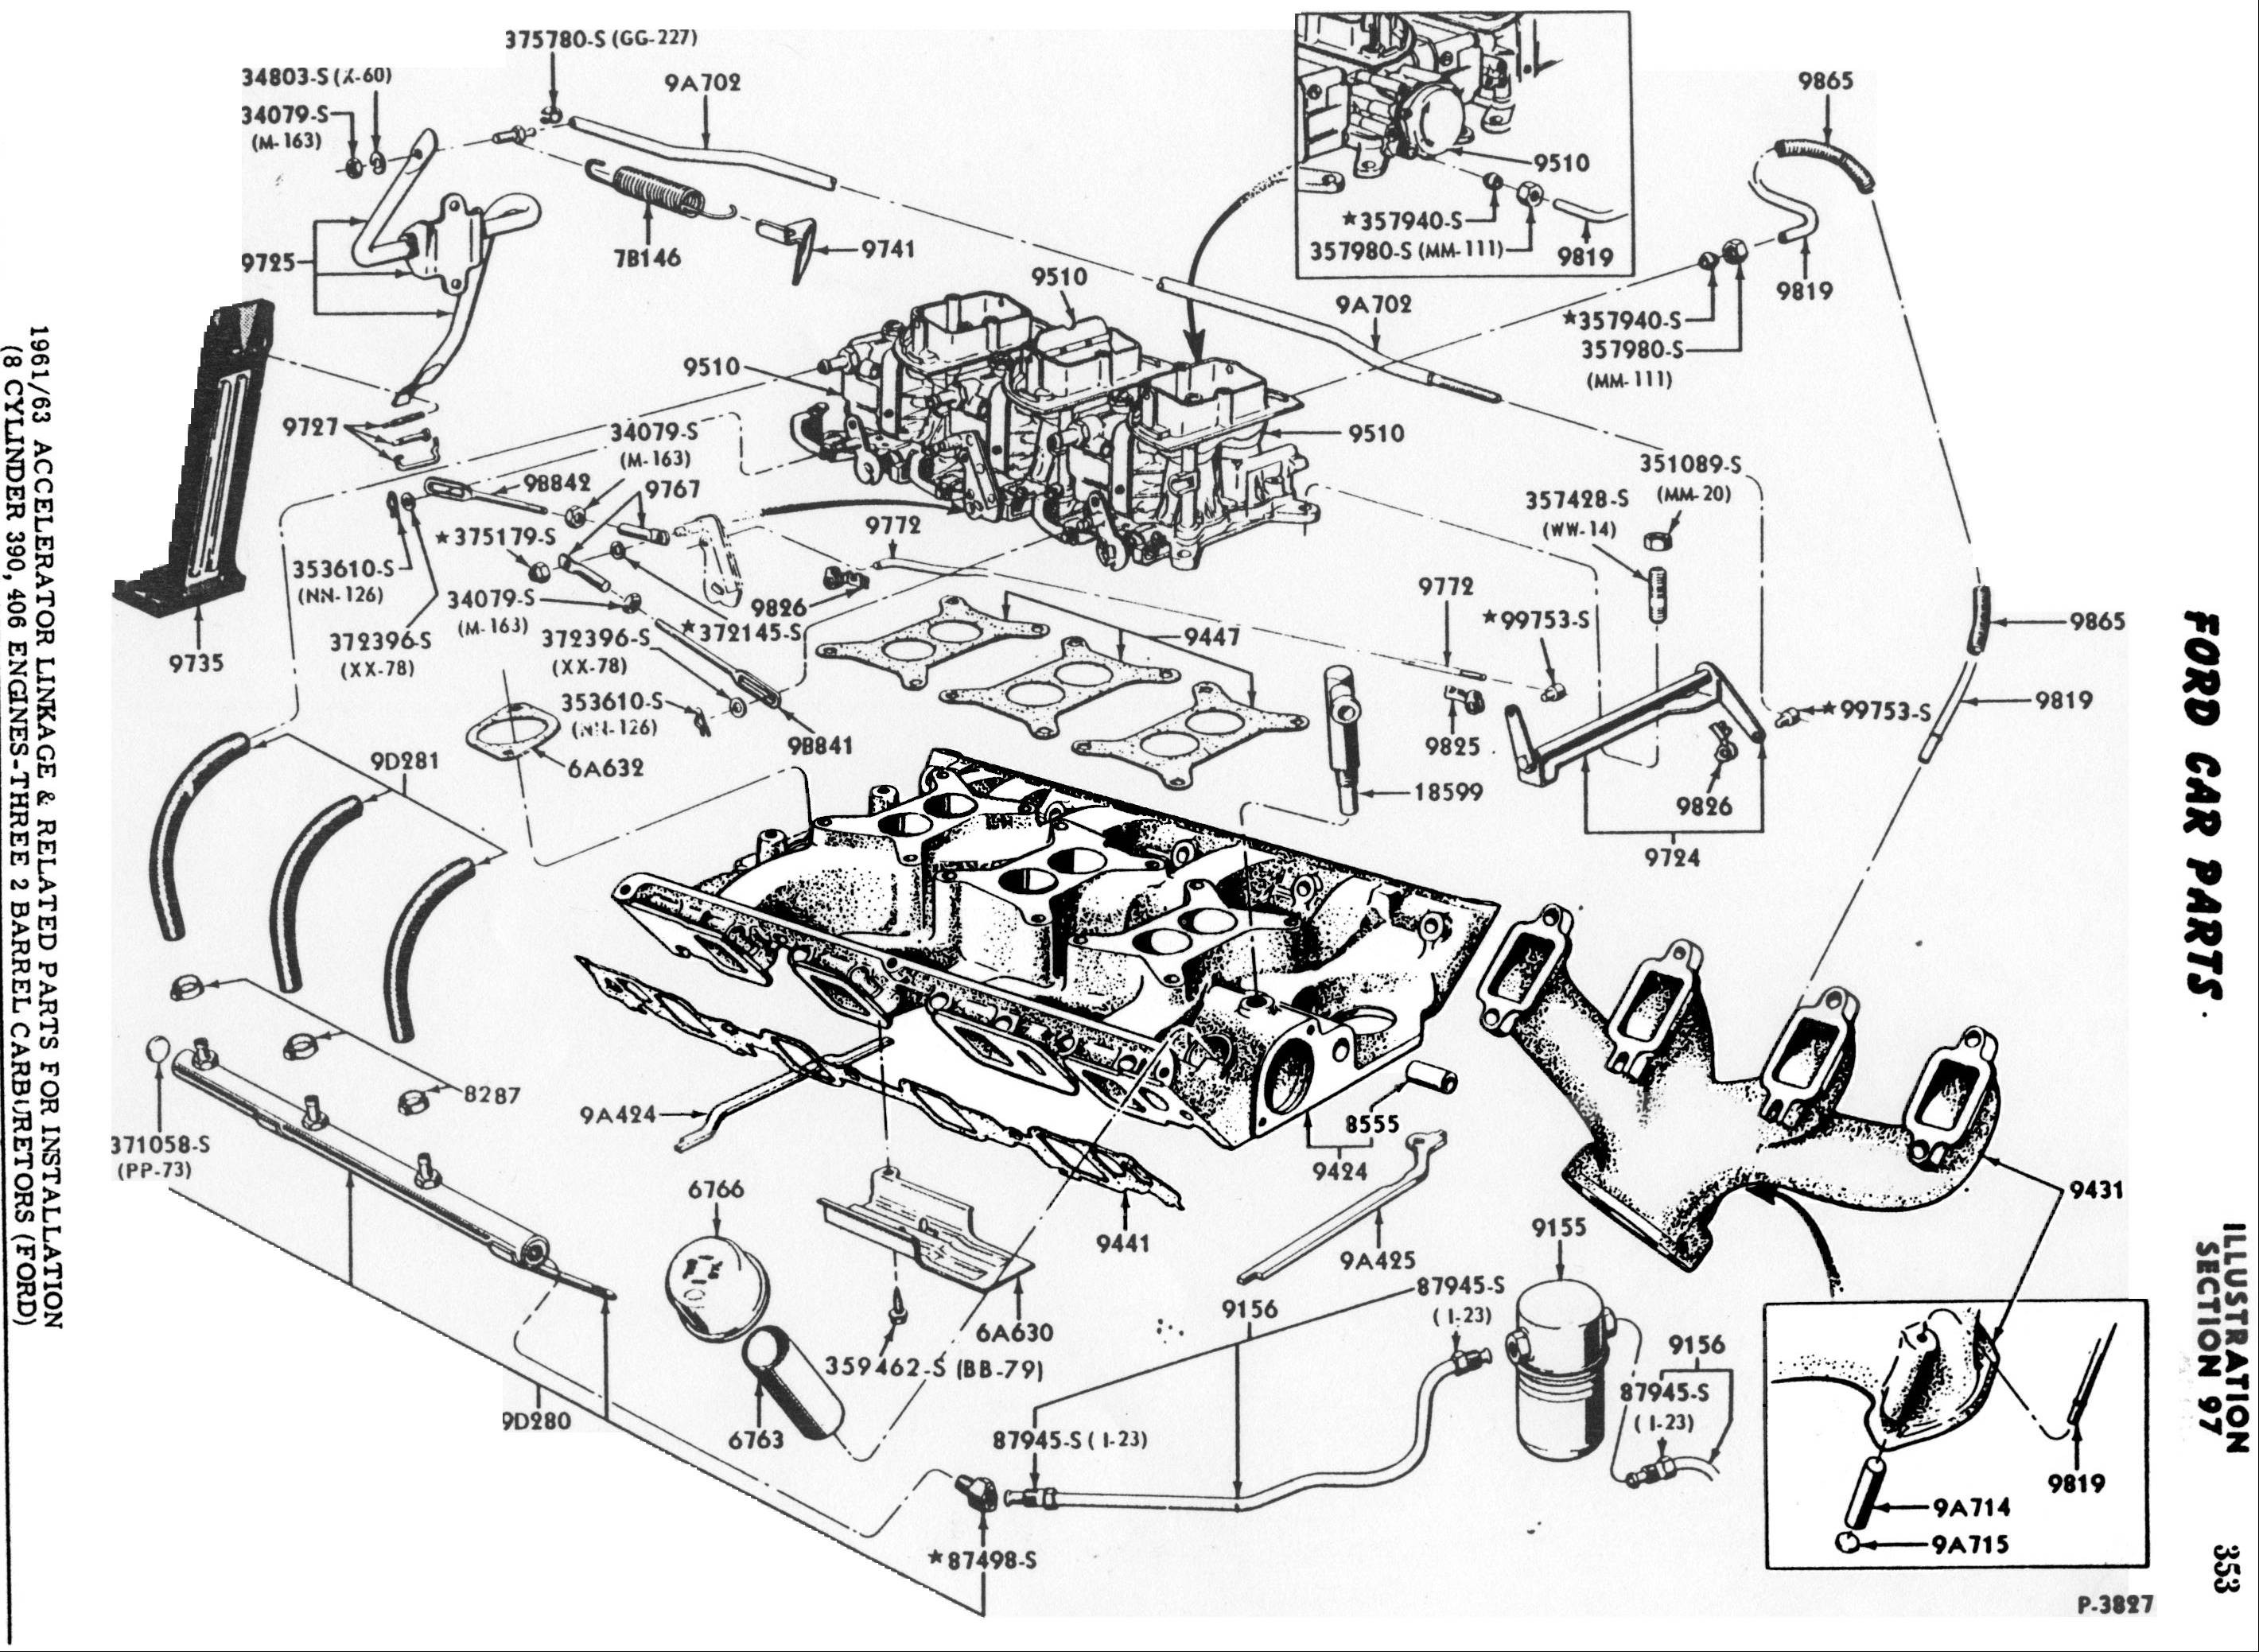 Car Engine Diagram with Labeled 460 ford Engine Diagram Wiring Info ...